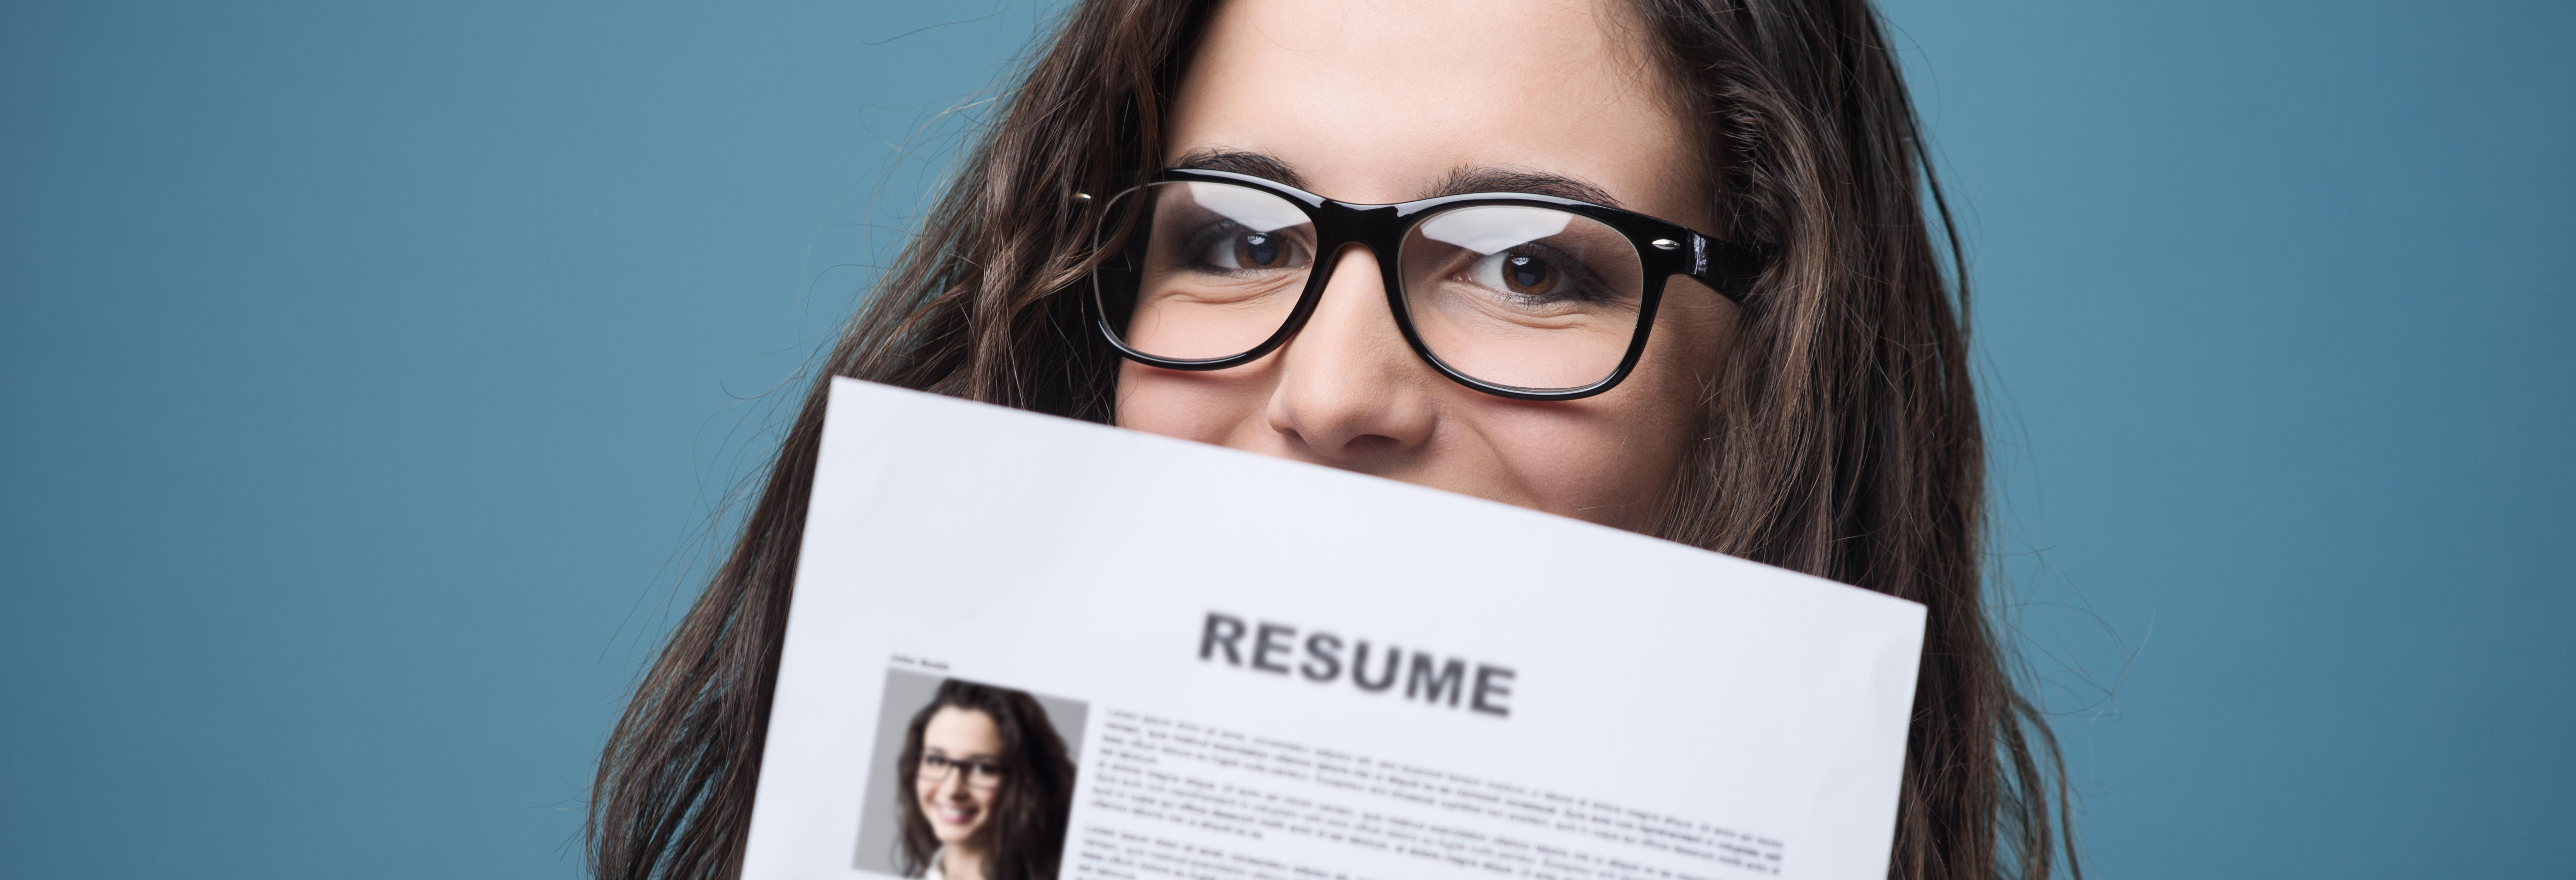 3 Resume Mistakes And How To Fix Them